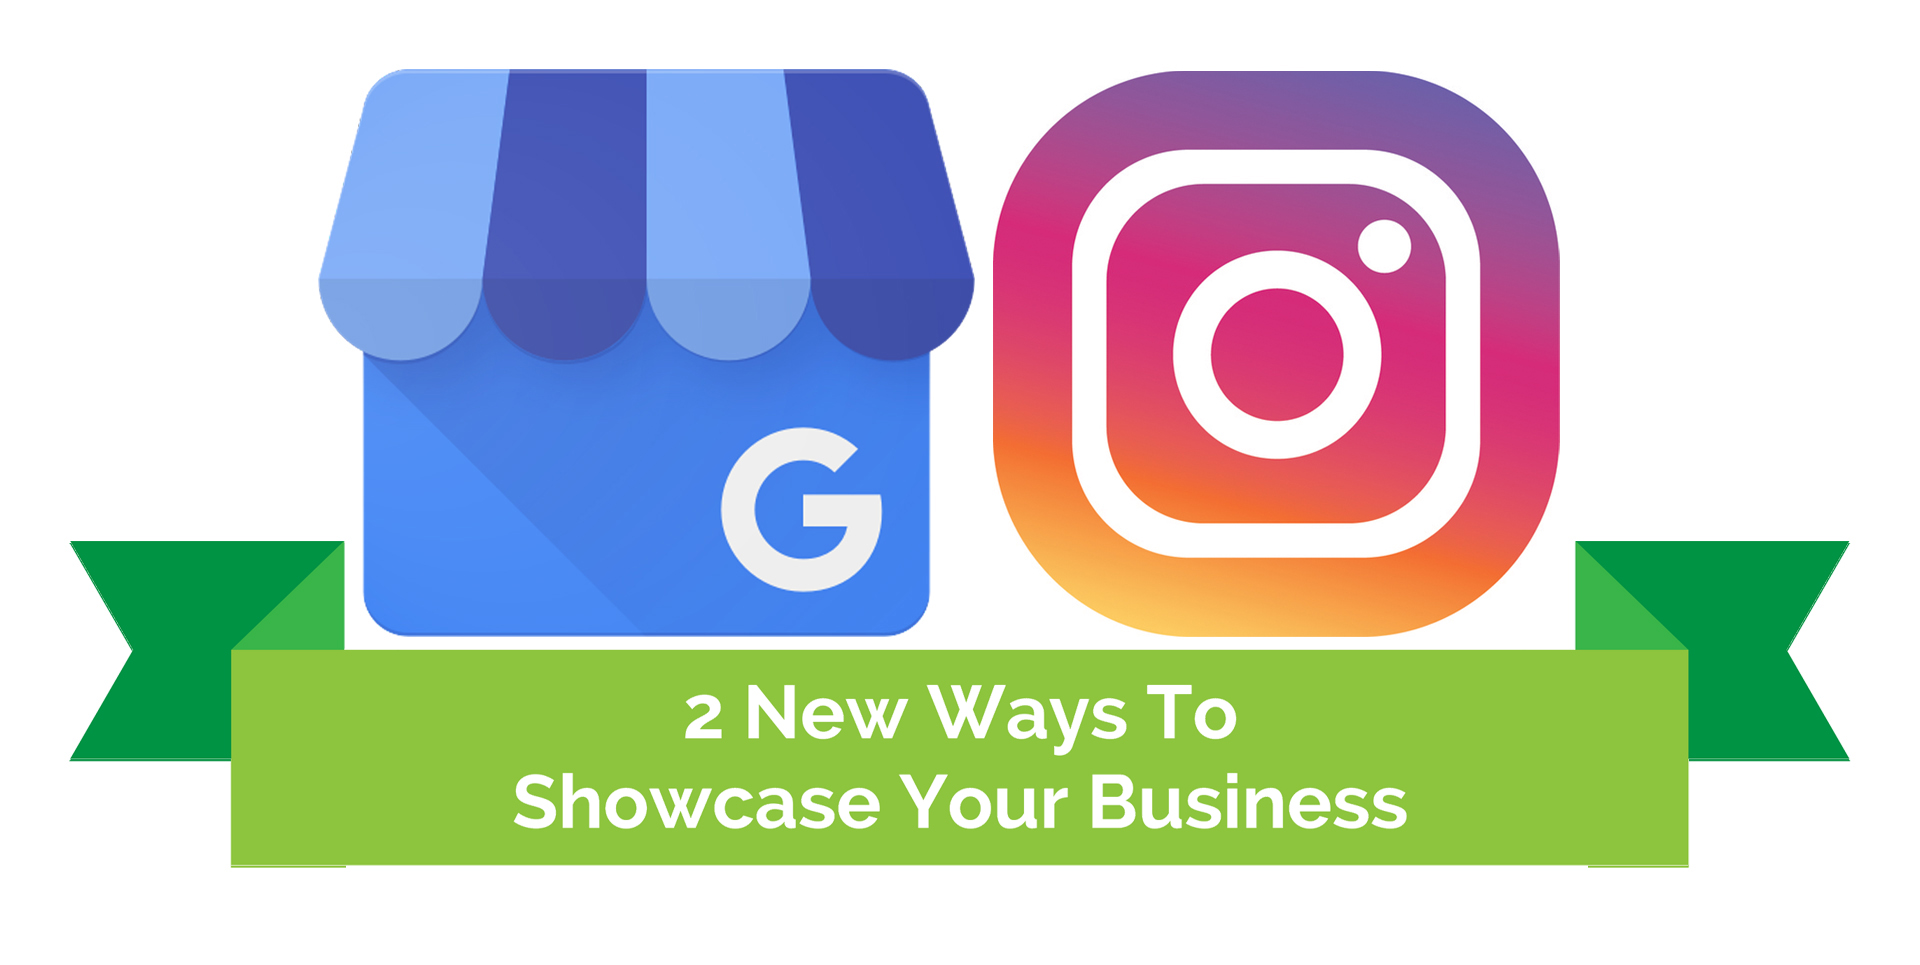 2 New Ways To Showcase Your Business